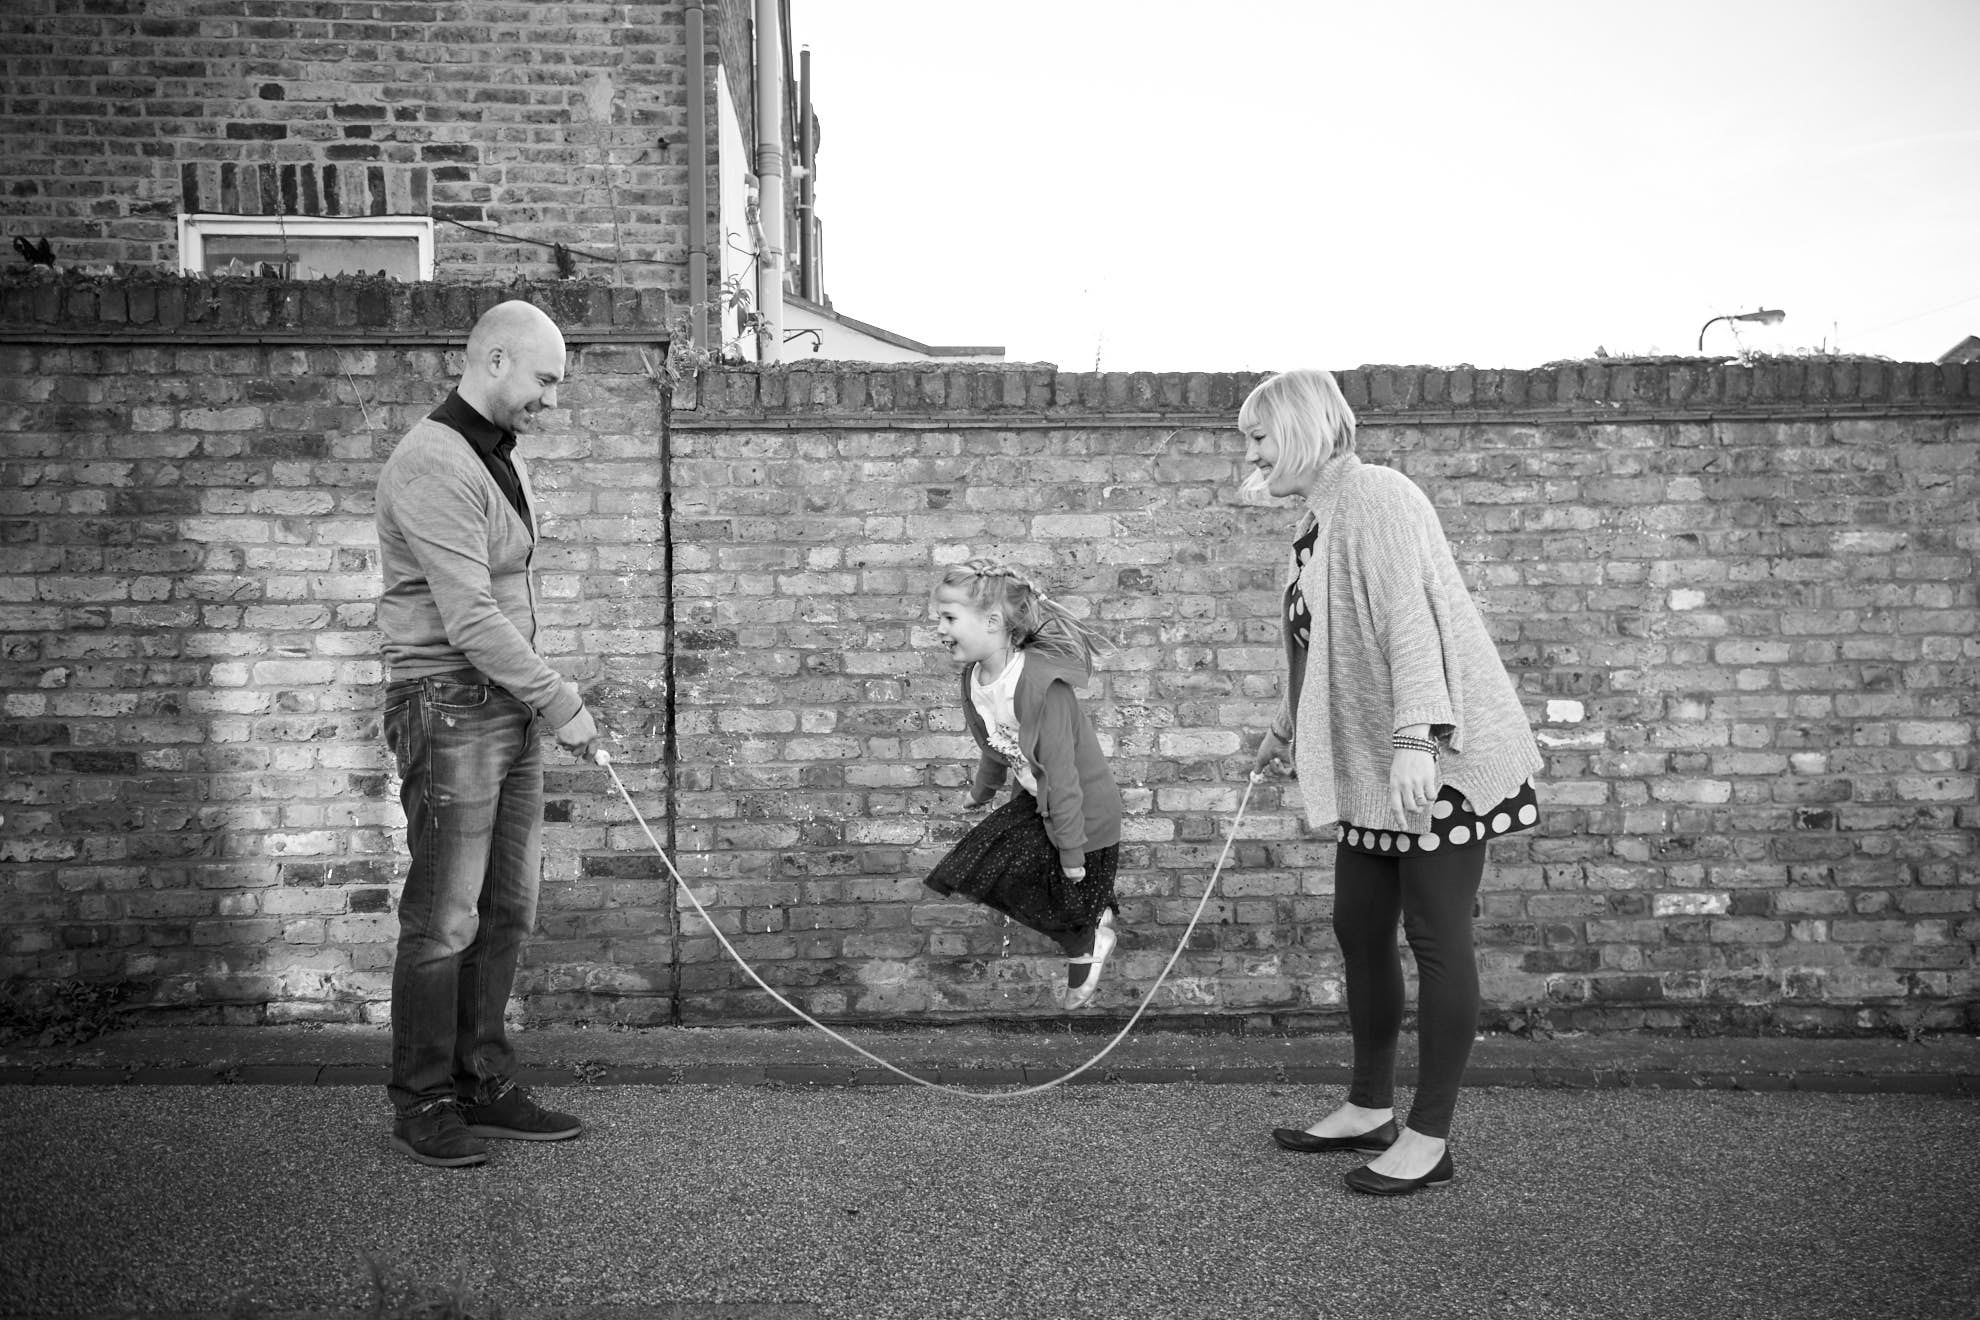 Documentary Family Photography - Reportage style